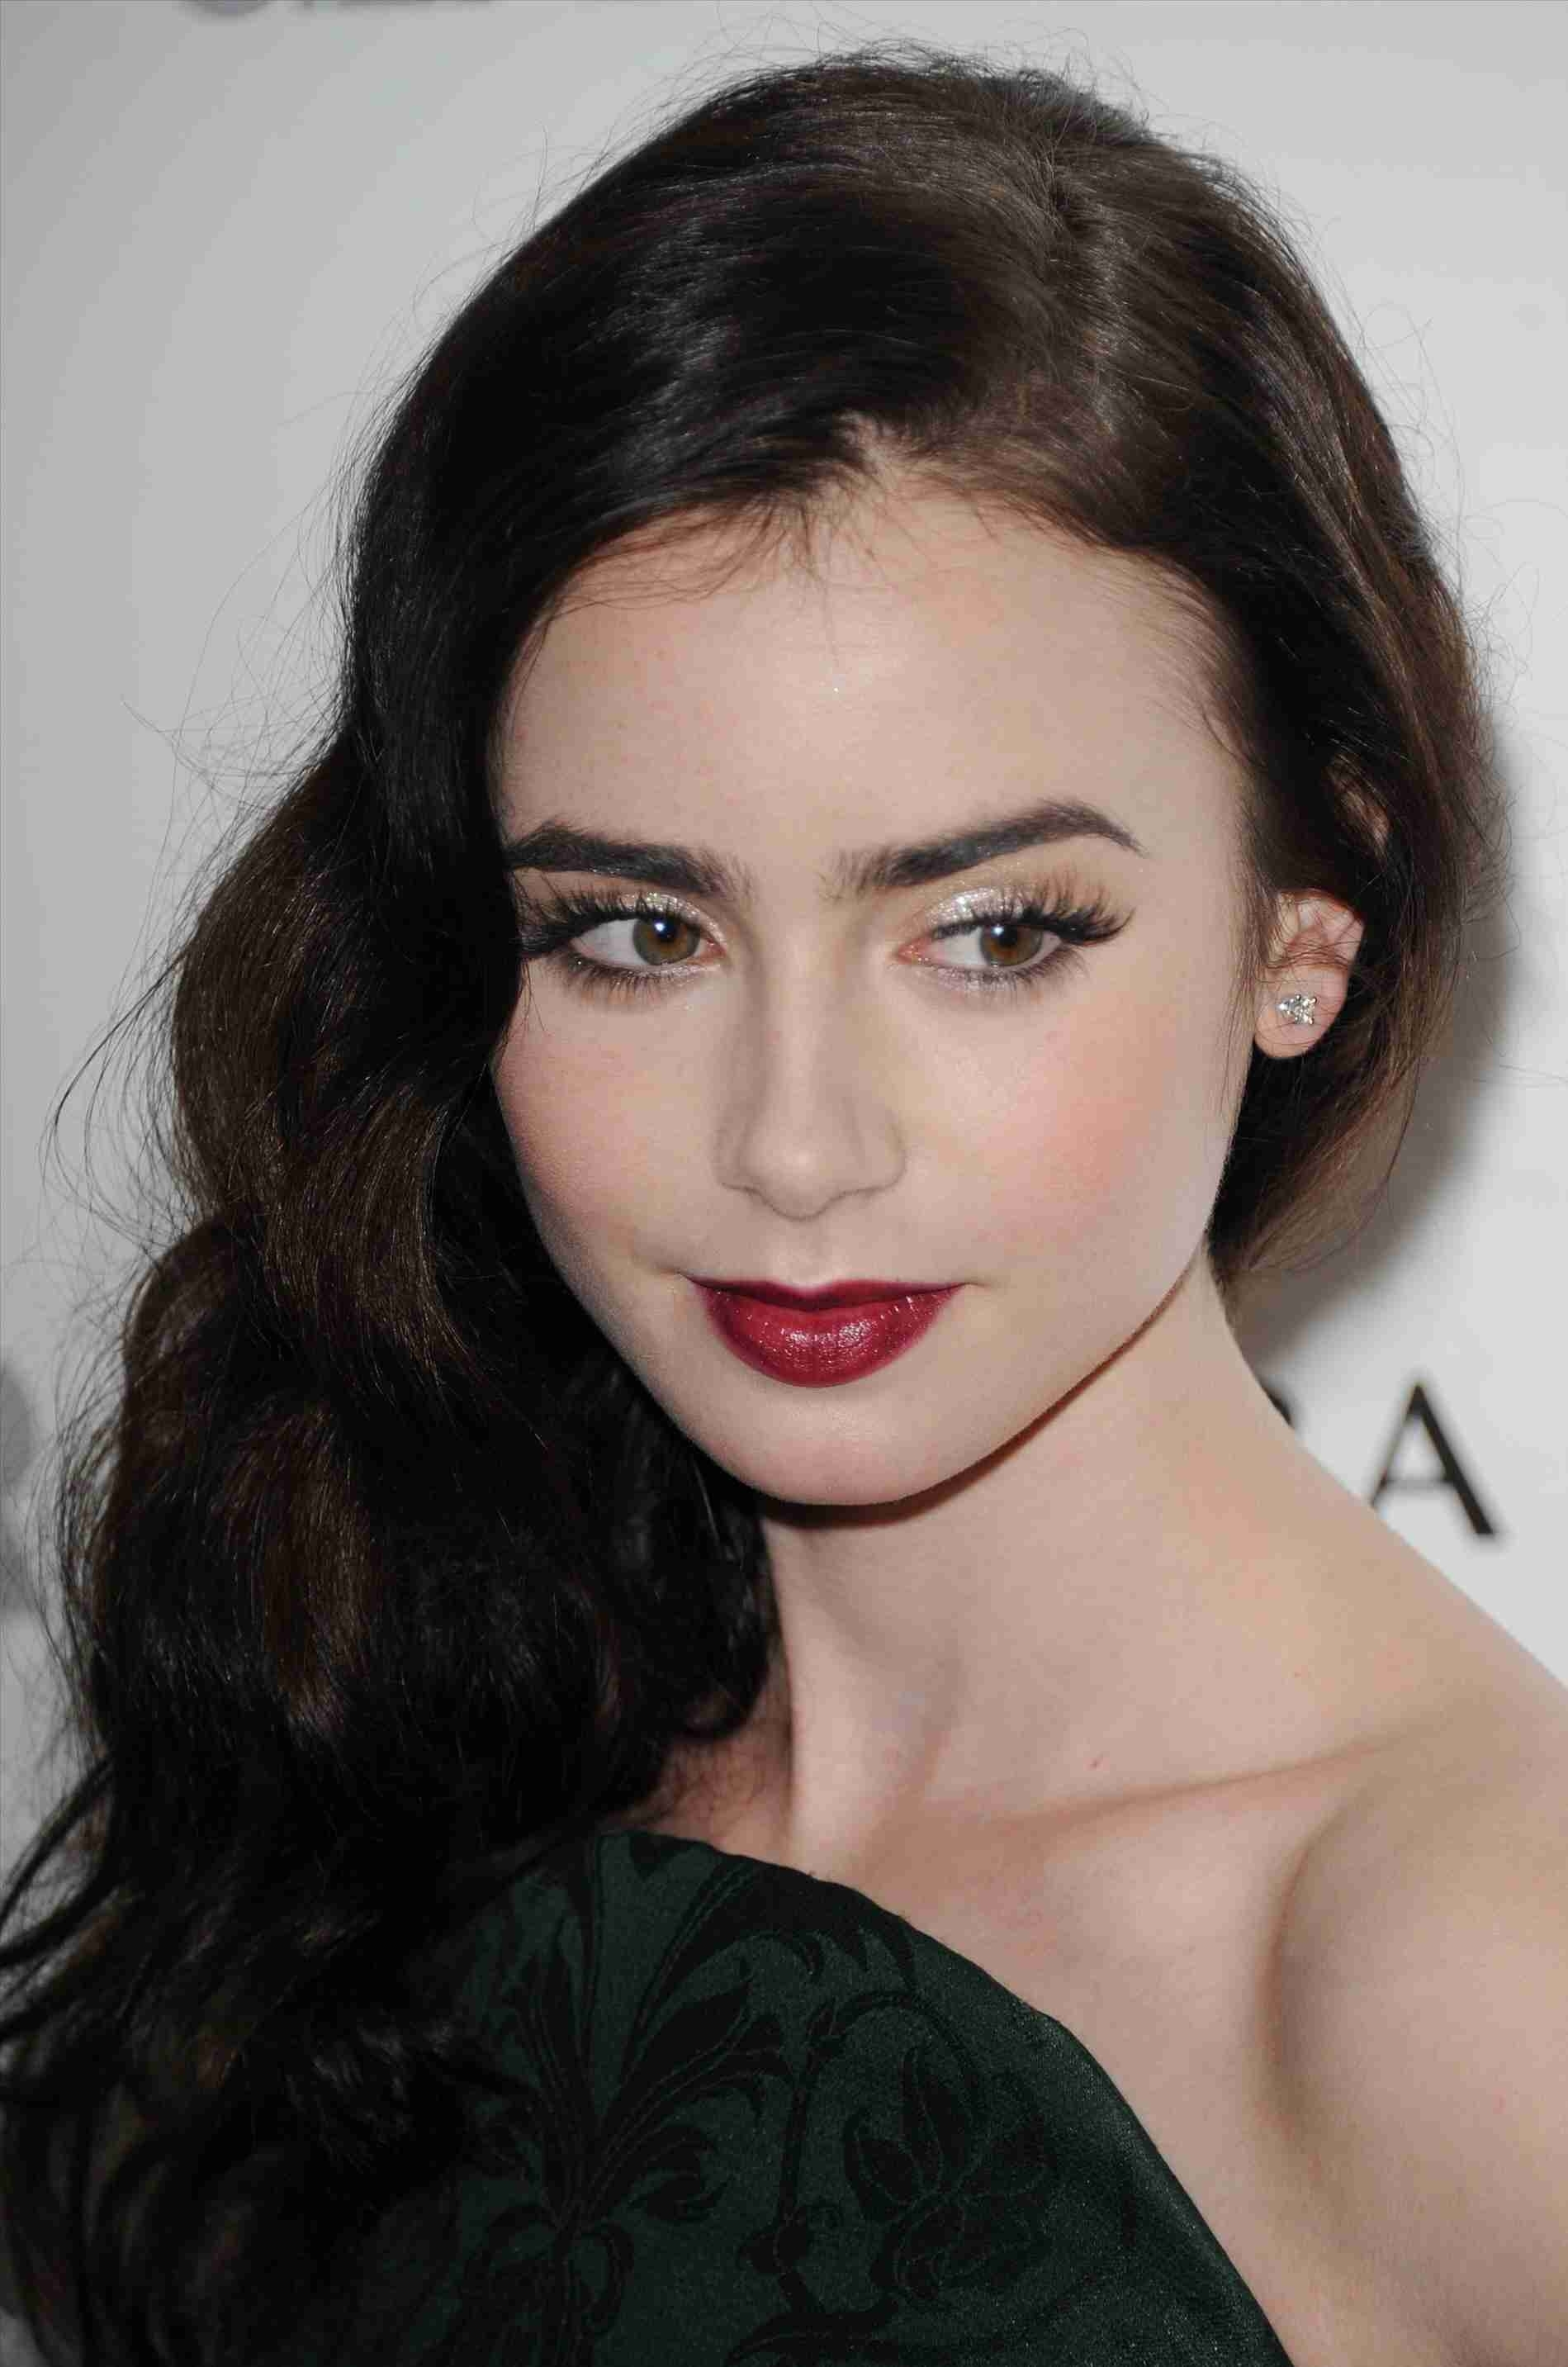 Makeup For Pale Skin And Dark Hair People With Green Eyes Winter for Makeup For Pale